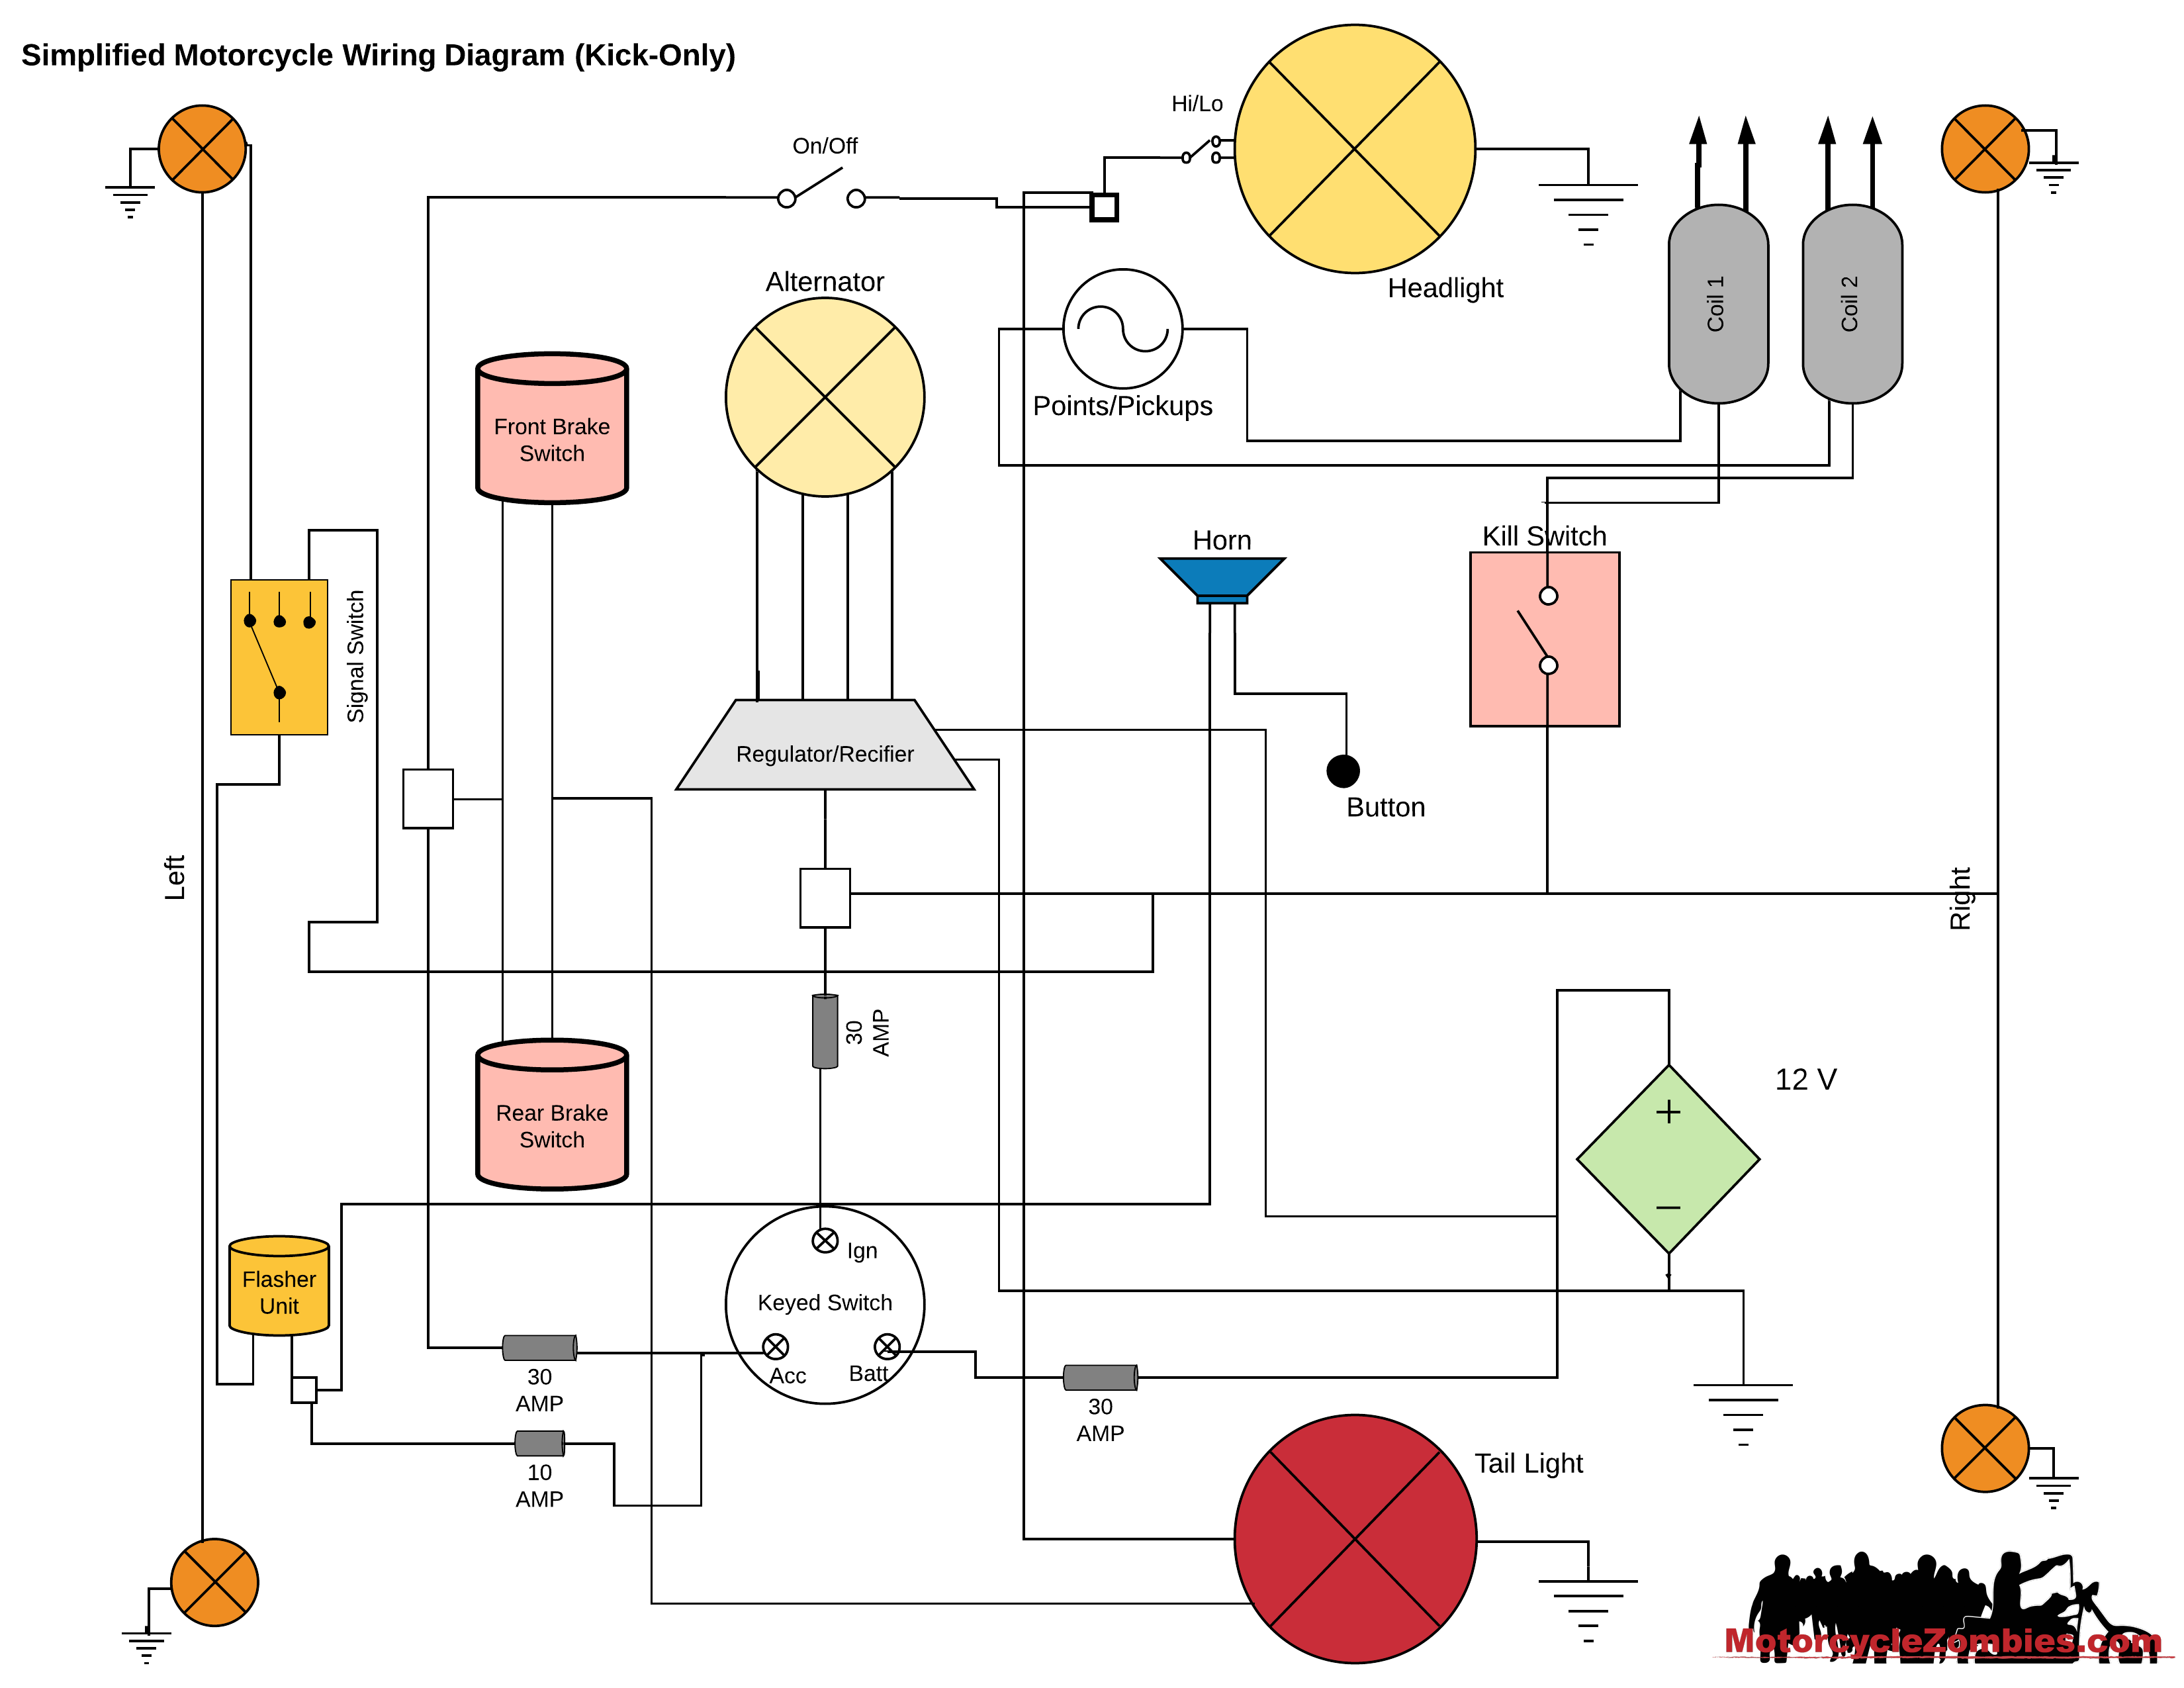 Charging System Wiring Diagram from www.motorcyclezombies.com